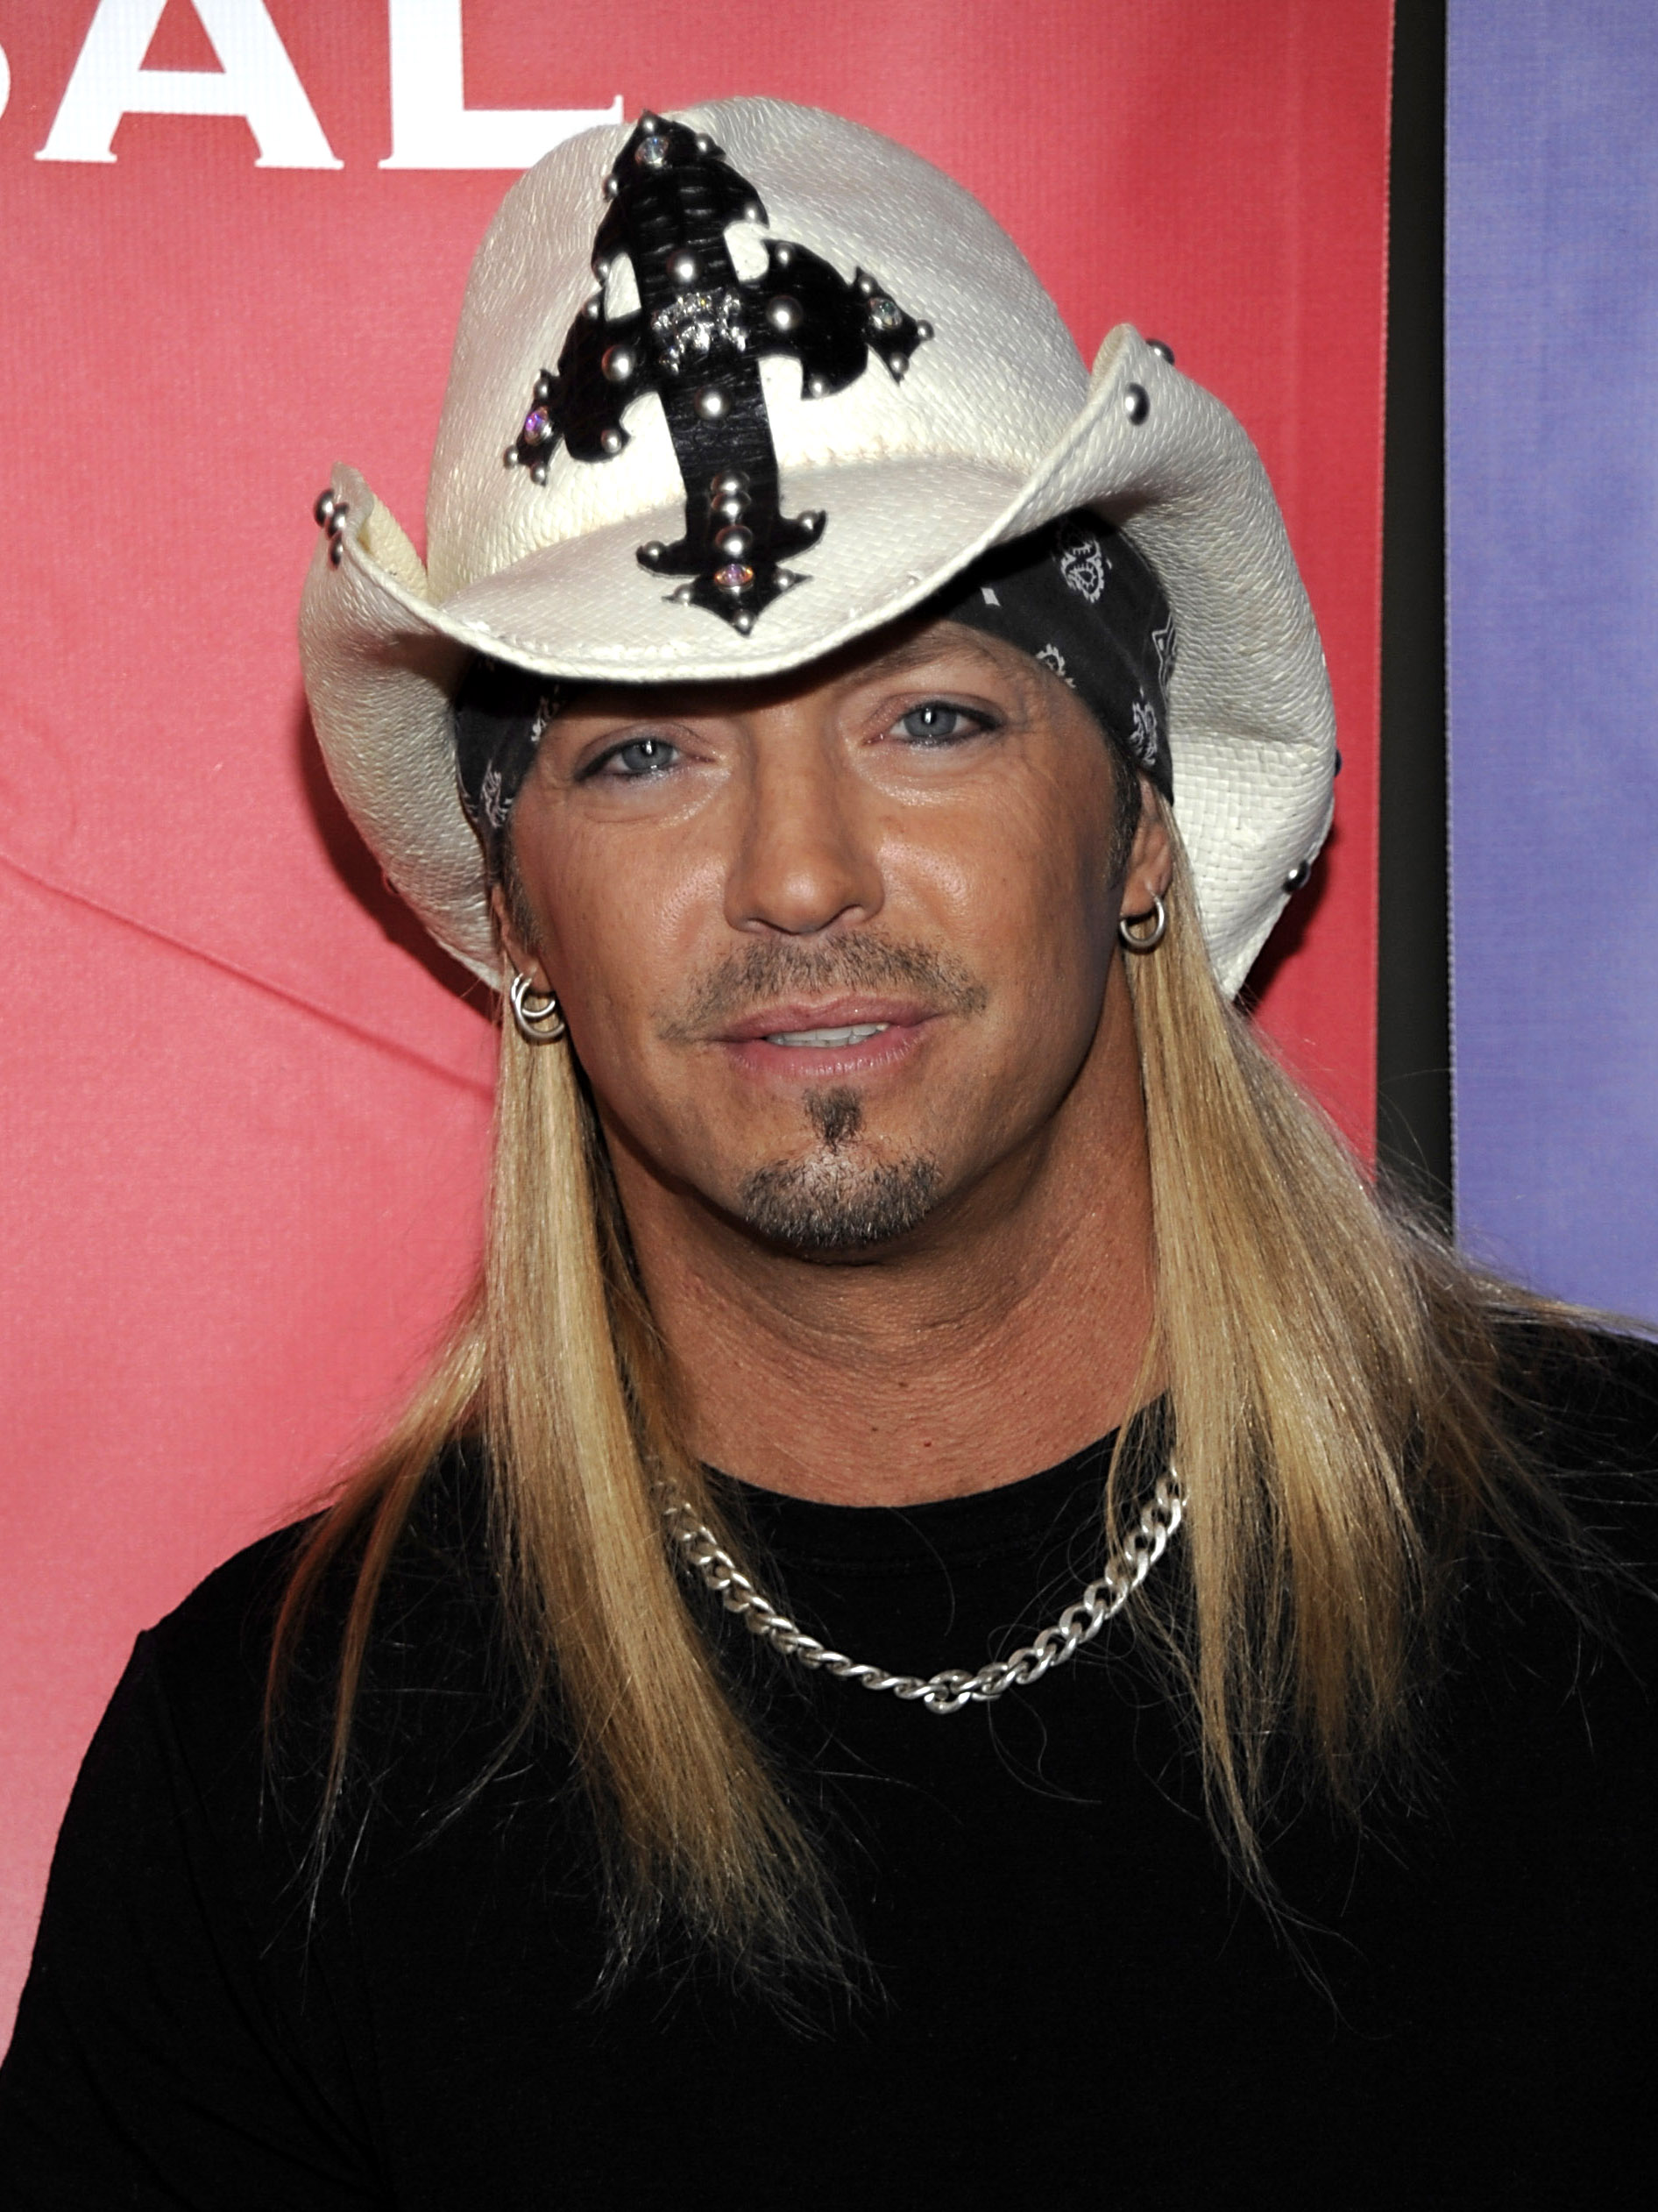 bret michaels wasted time